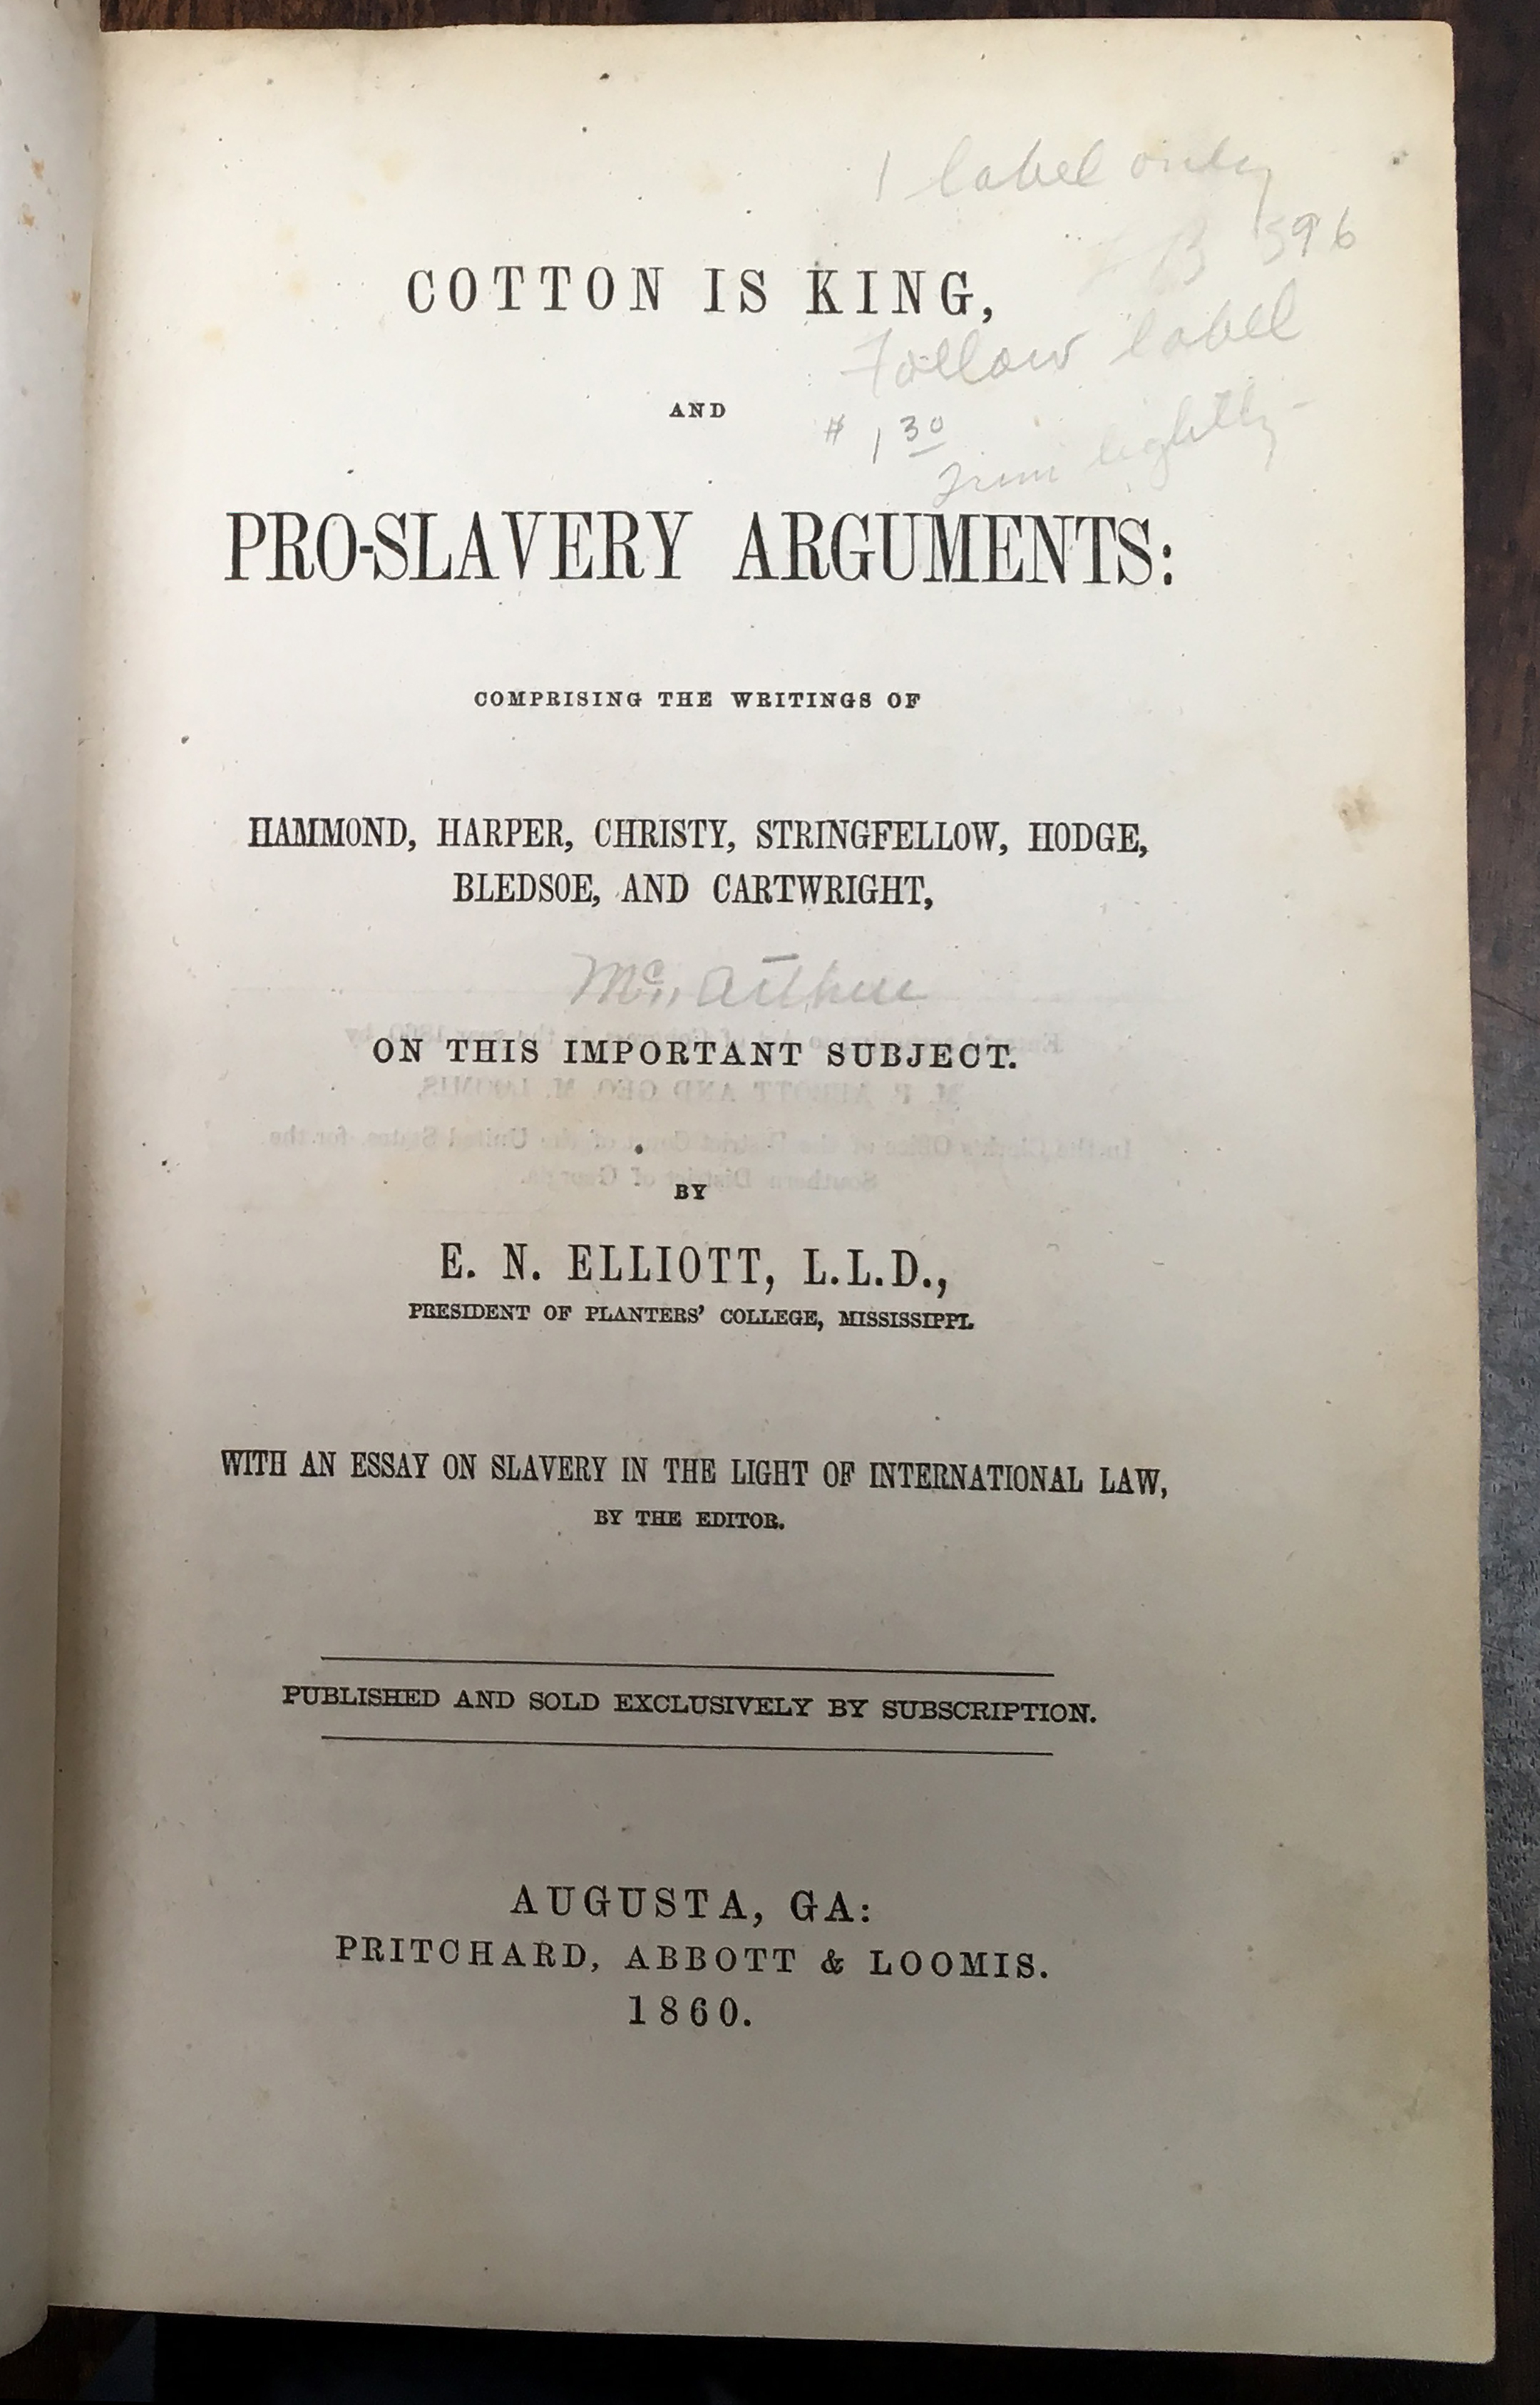 Cotton is king, and pro-slavery arguments: comprising the writings of Hammond, Harper, Christy, Stringfellow, Hodge, Bledsoe, and Cartwright, on this important subject